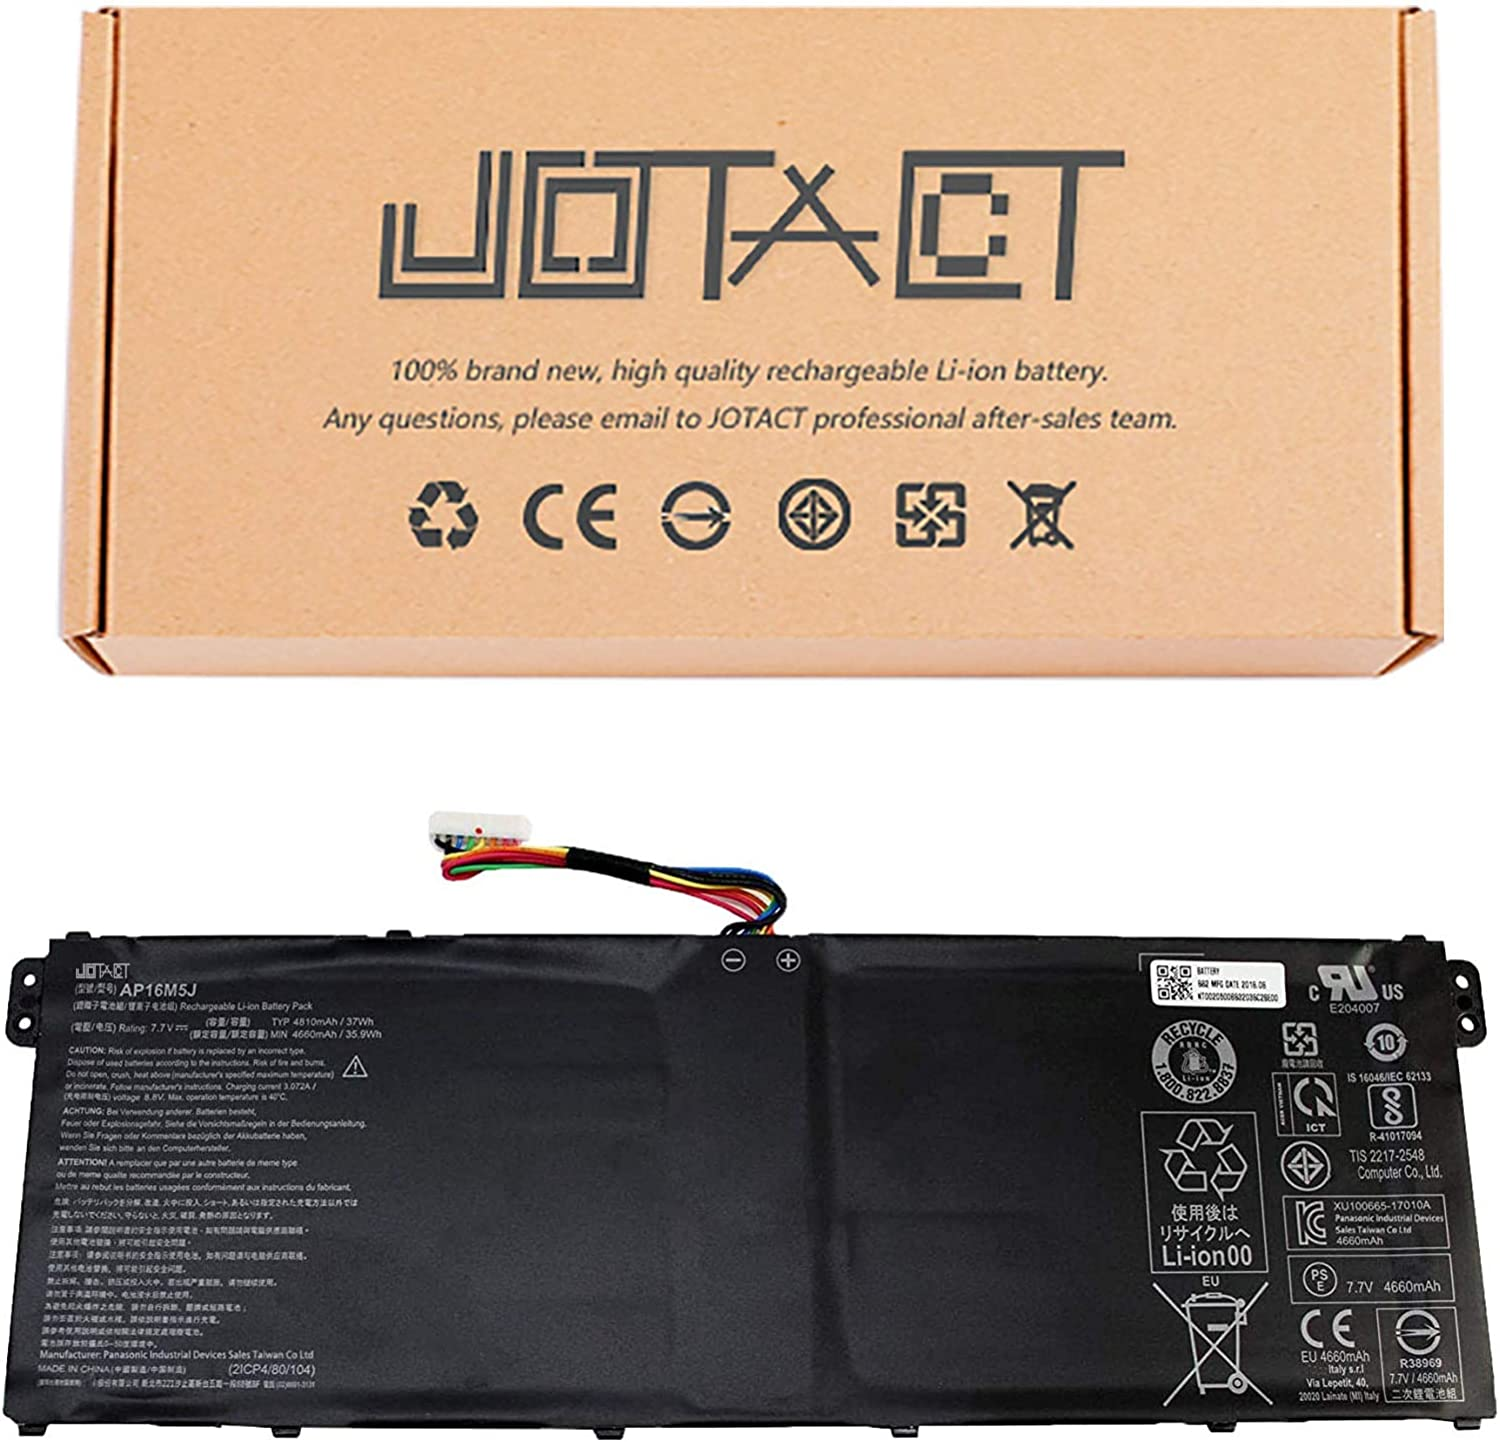 JOTACT AP16M5J(7.7V 37Wh/4810mAh 2-Cell) Laptop Battery Compatible with Acer Aspire 1 A114-31 3 A314-31 21 51 5 A515-51 ES1-523 Series Notebook KT.00205.004 KT00205004 2ICP4/80/104